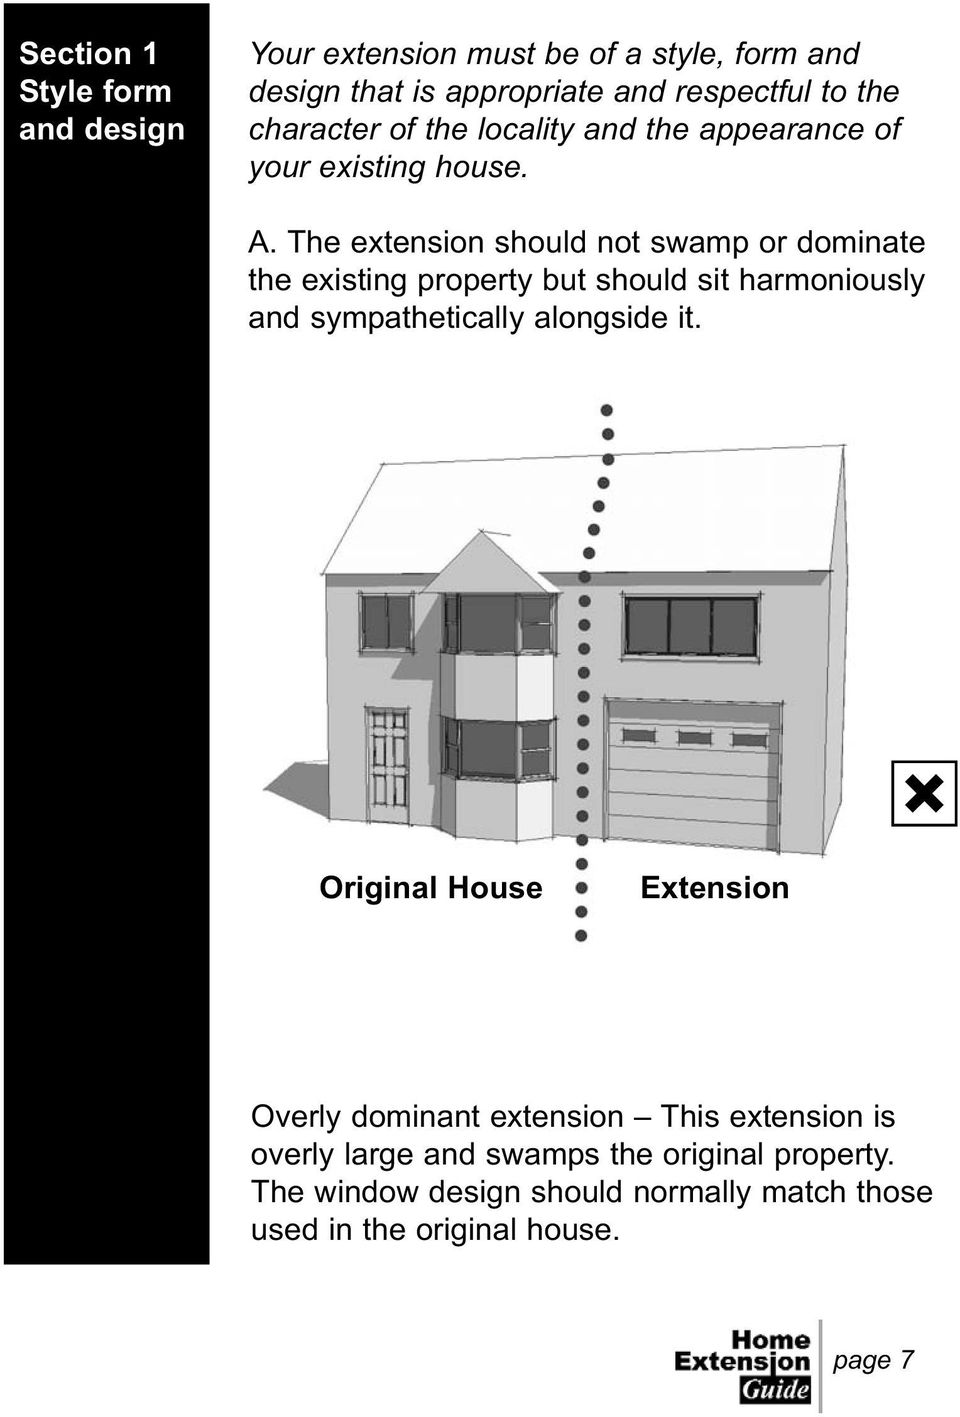 The extension should not swamp or dominate the existing property but should sit harmoniously and sympathetically alongside it.